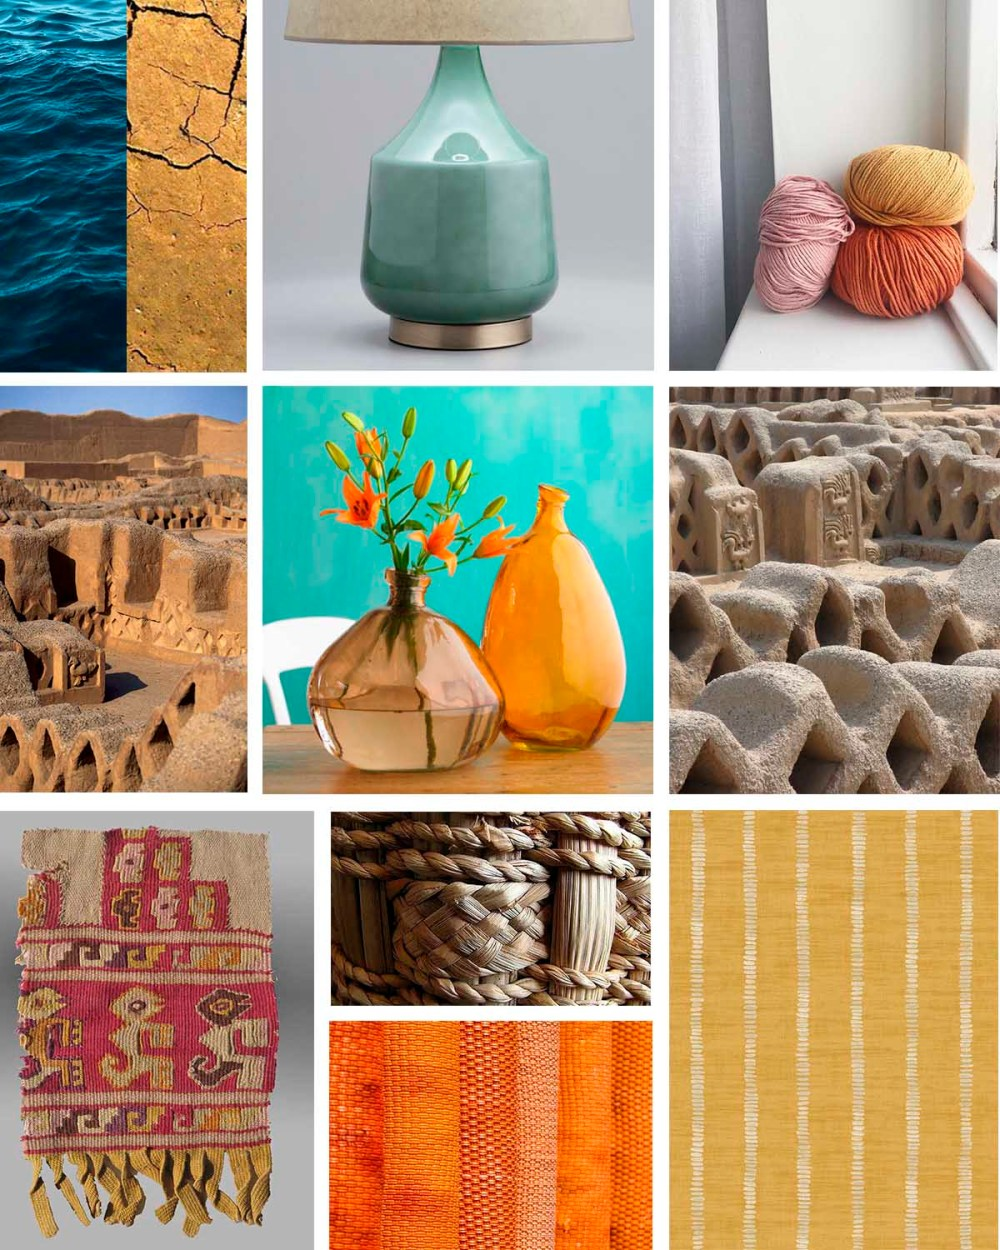 Moodboard Chan Chan the largest mud-brick city in the world